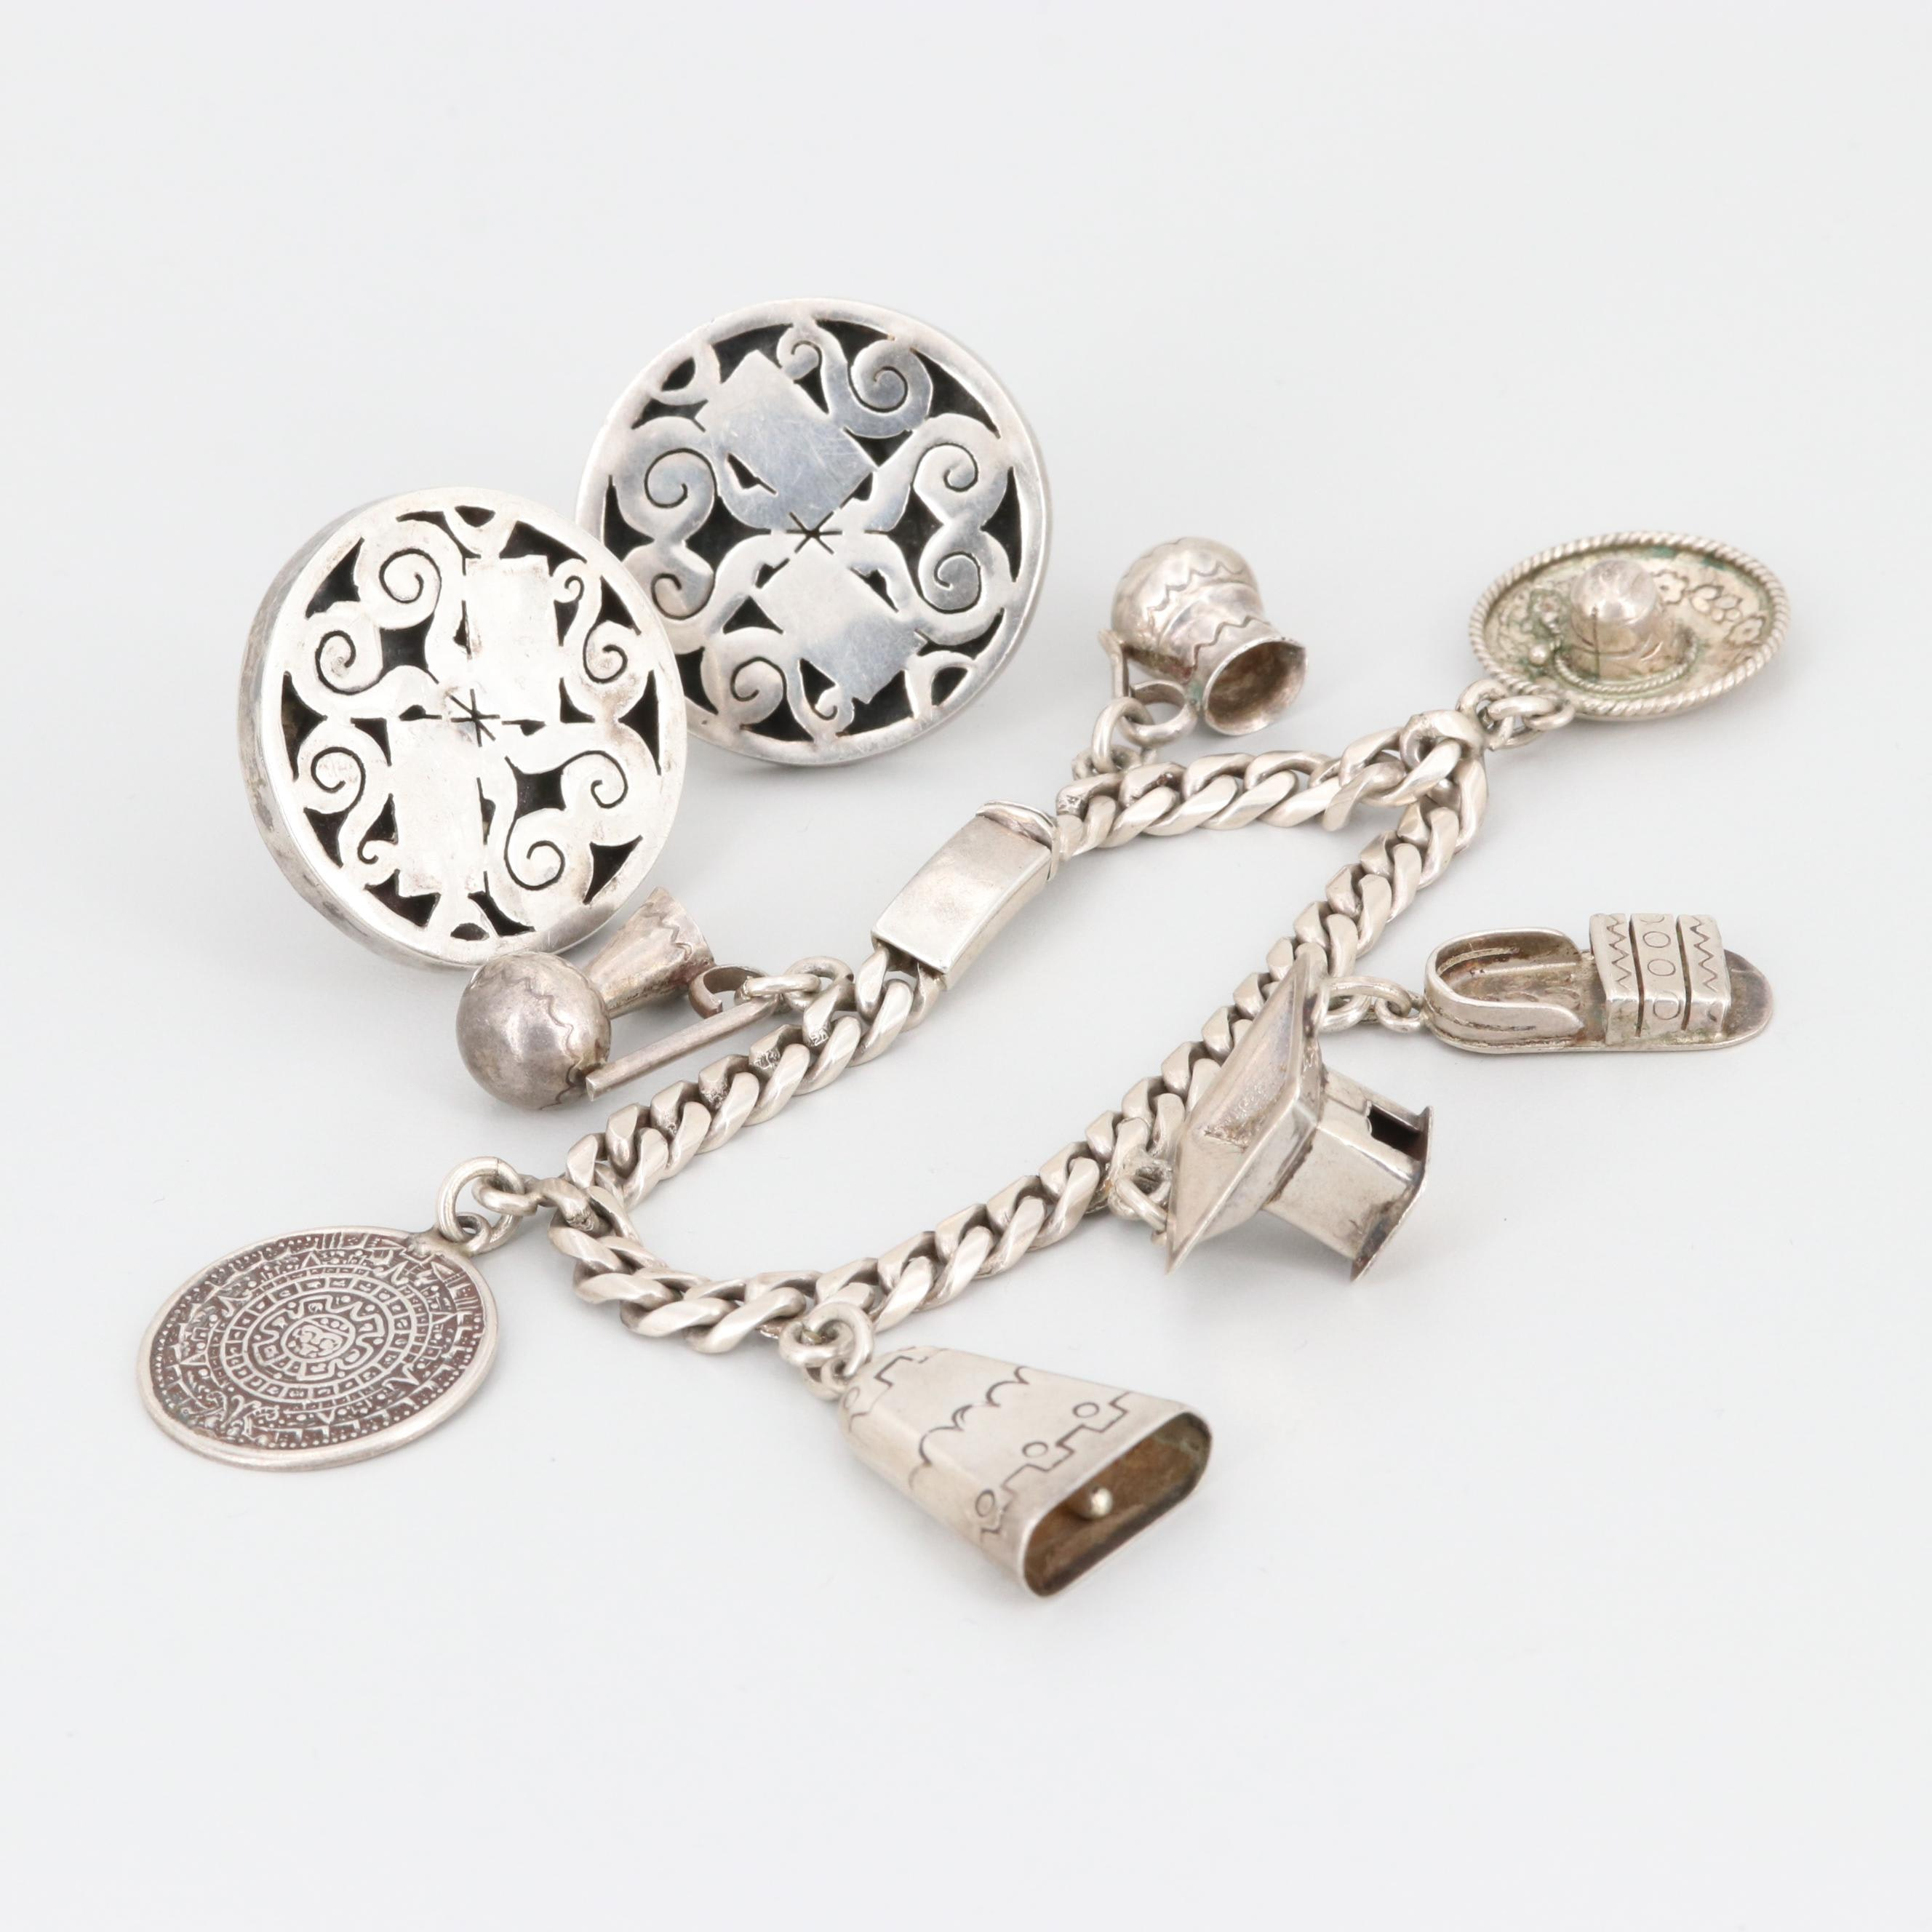 Mexican Sterling Silver Bracelet and Cufflinks